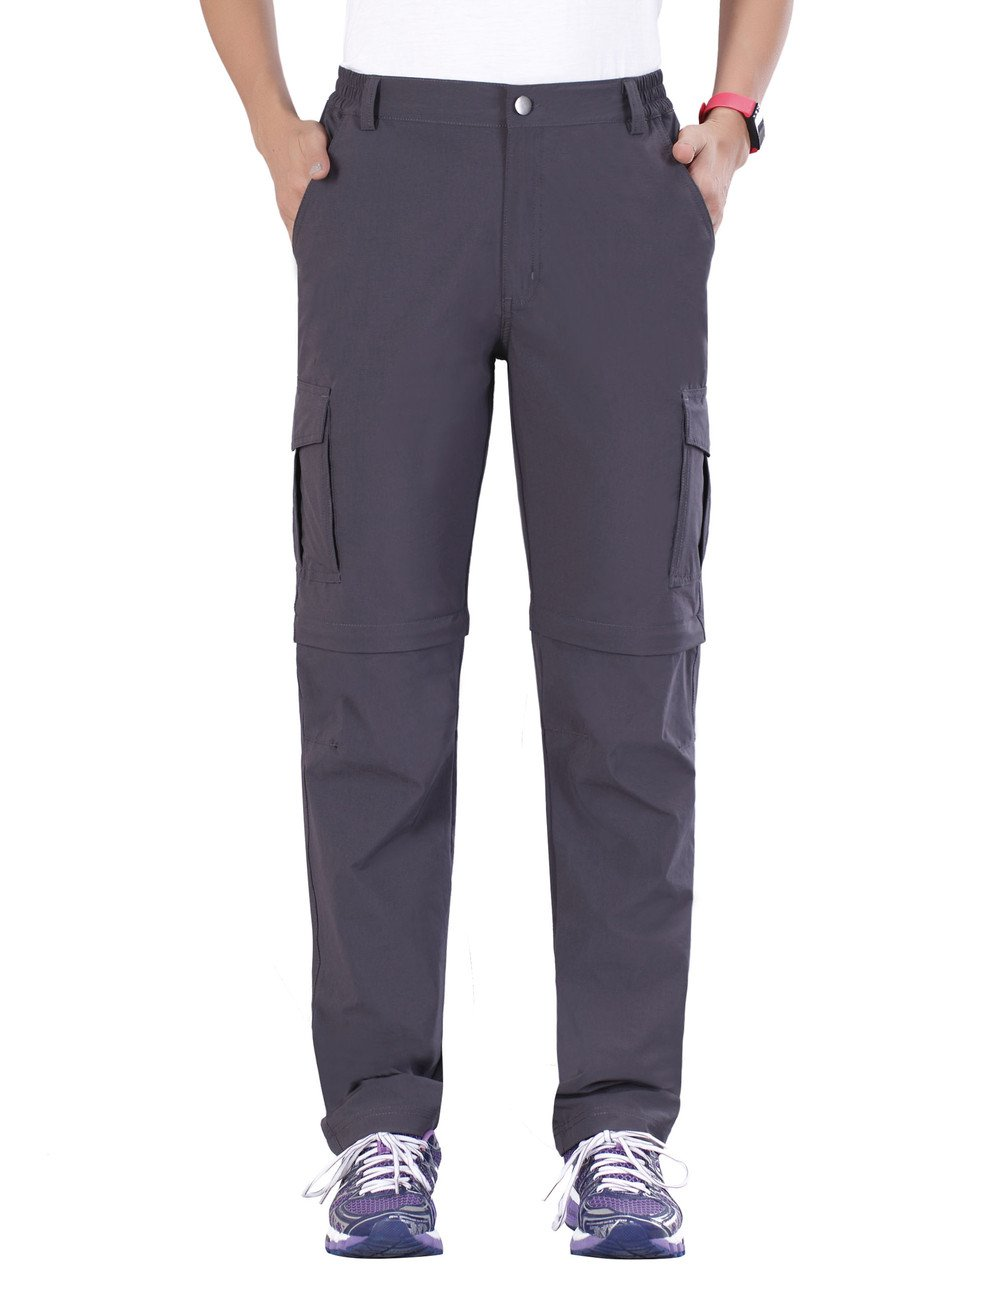 Nonwe Women's Outdoor Quick Dry Convertible Cargo Camping Pants Gray L/32 Inseam